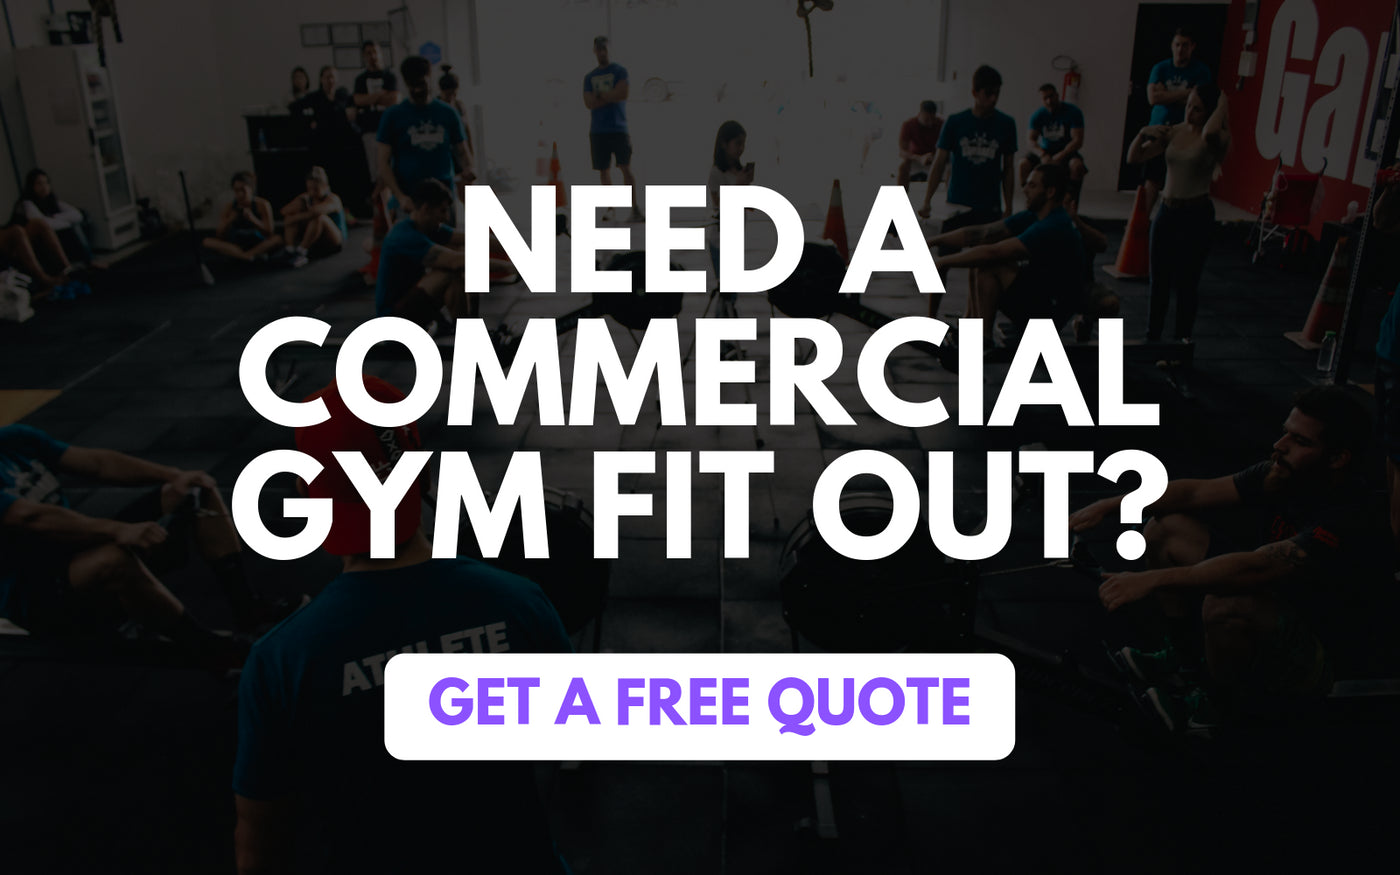 Gym equipment fitness equipment weight training commercial home